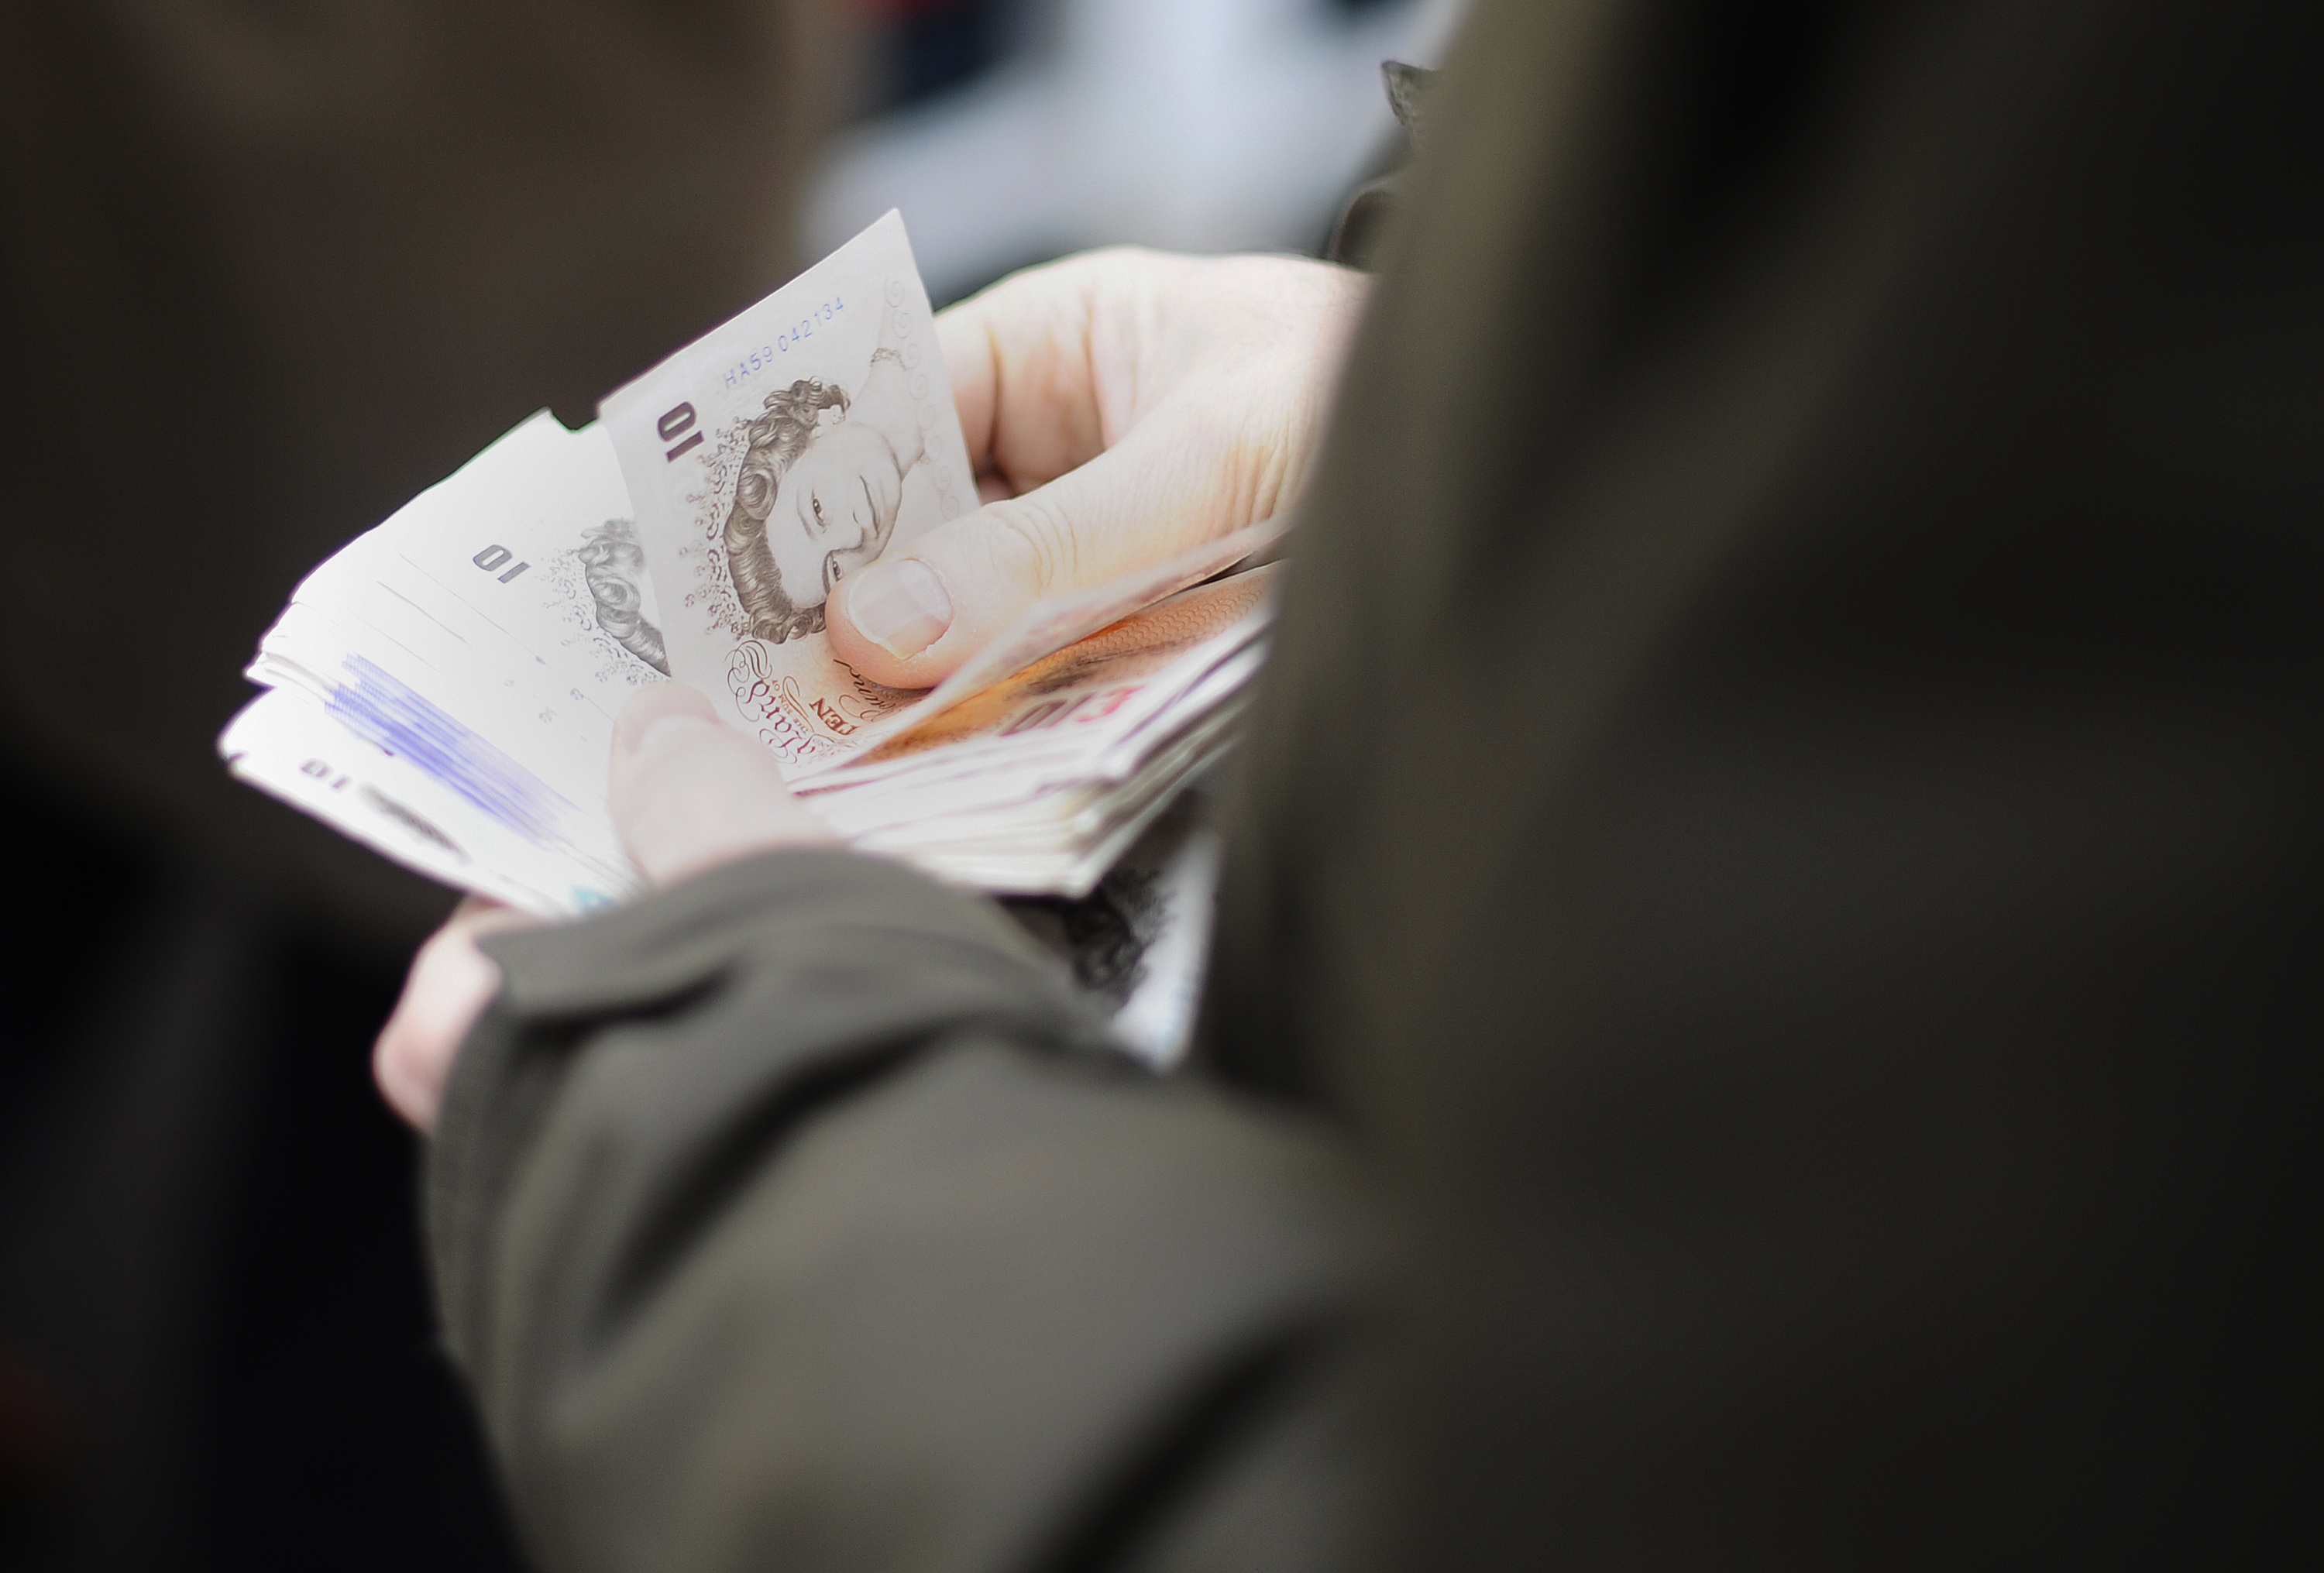 NEWBURY, ENGLAND - DECEMBER 15:  A punter gets his money ready for a wager at Newbury racecourse on December 15, 2010 in Newbury, England.  (Photo by Alan Crowhurst/ Getty Images)